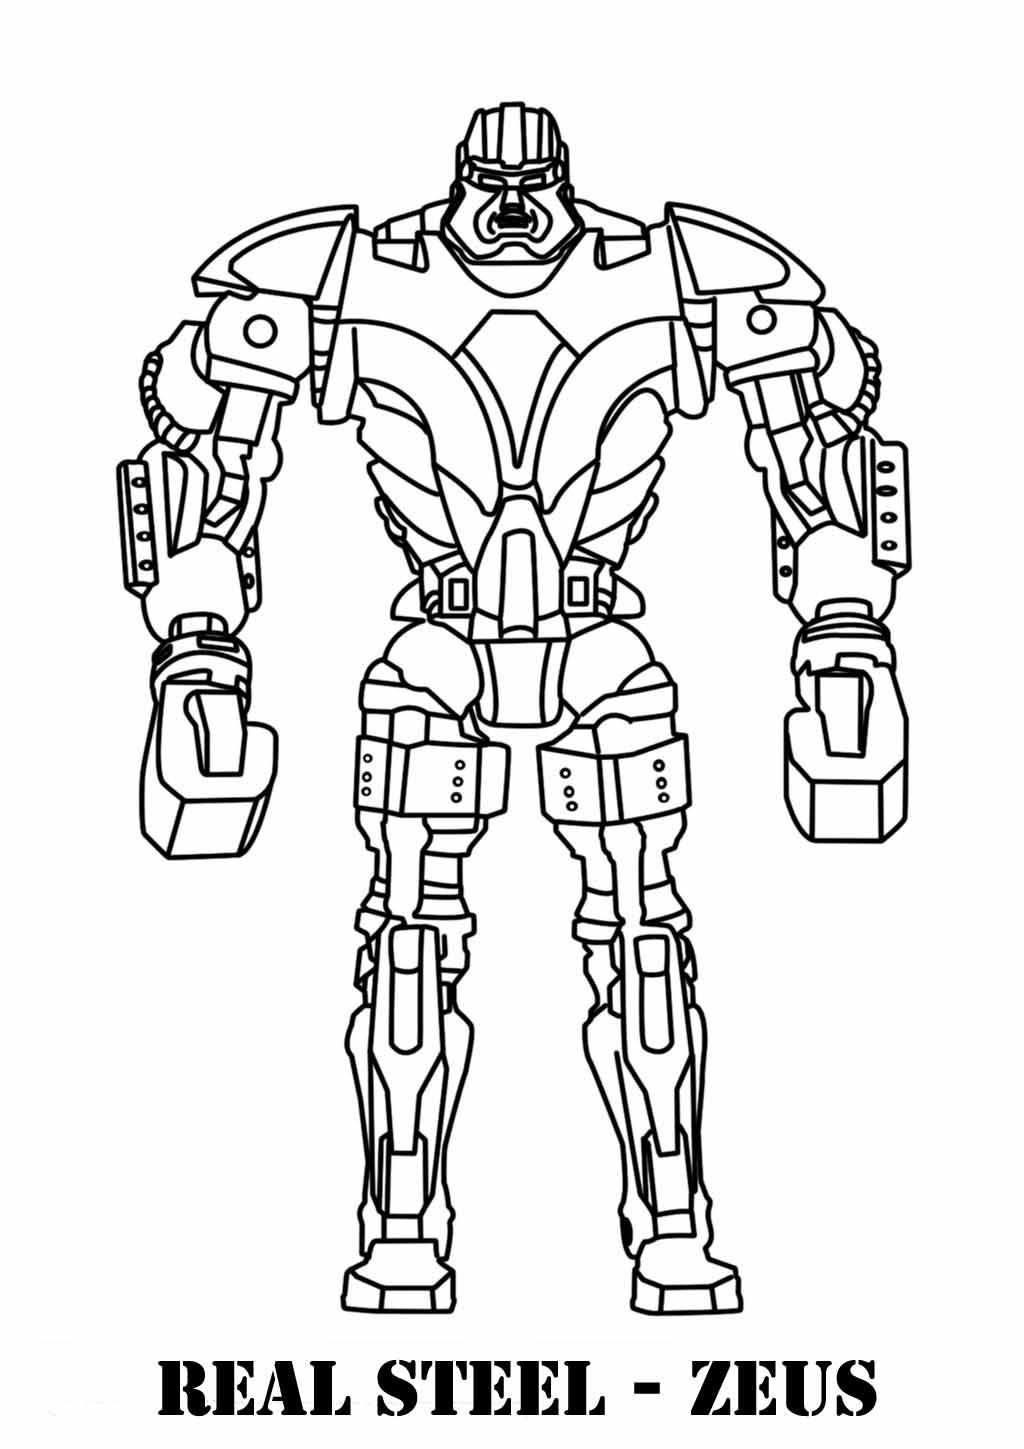 real steel robots coloring pages for kids | Gabriel\'s 5th birthday ...